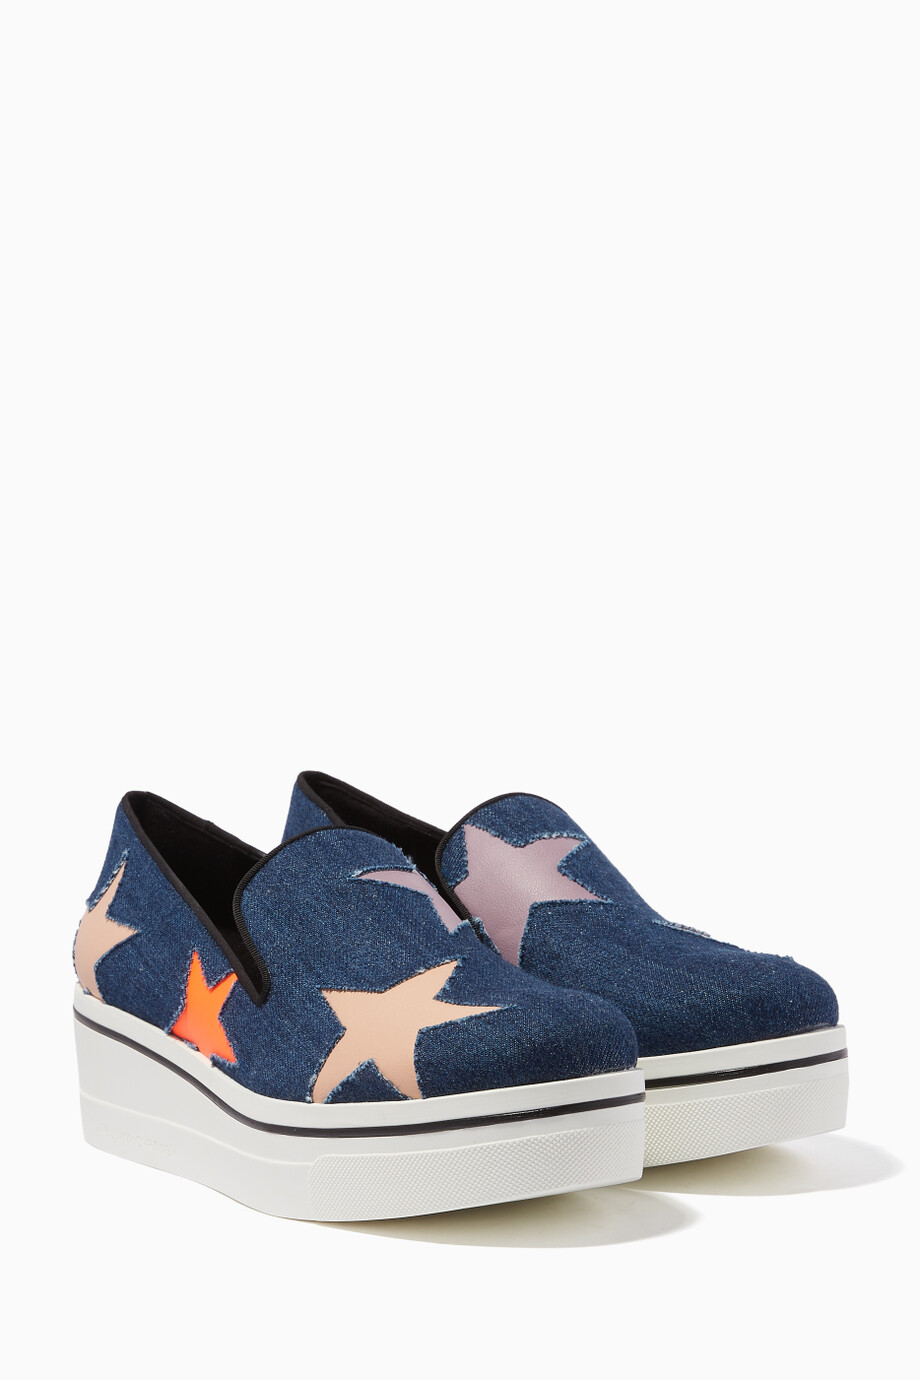 1e2e2a00987 Shop Stella McCartney Blue Dark-Blue Denim Star Binx Loafers for ...